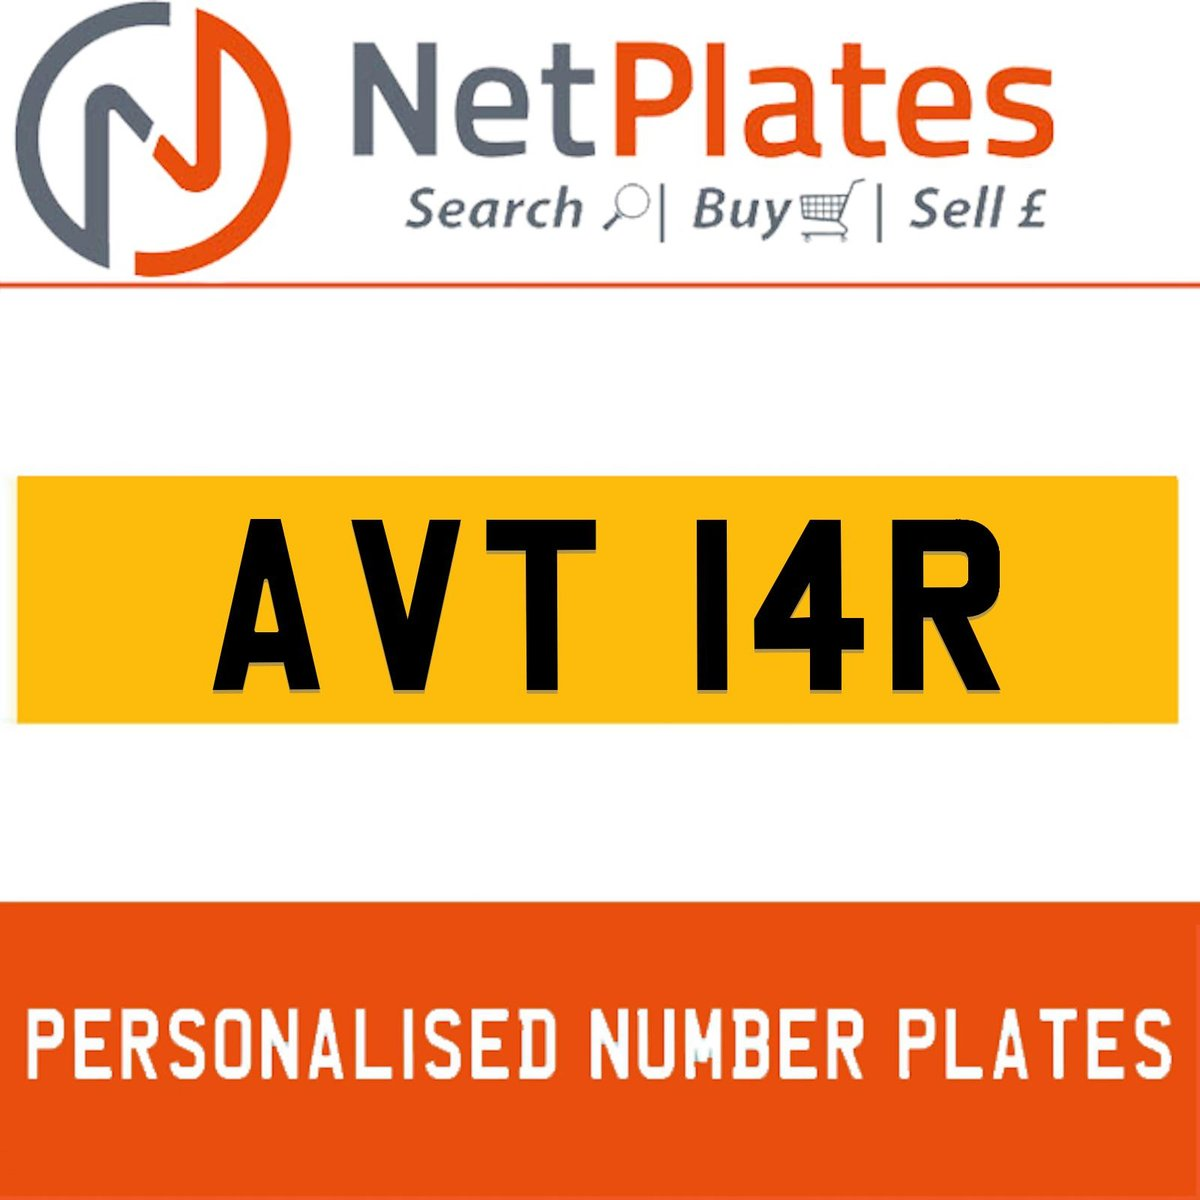 AVT 14R PERSONALISED PRIVATE CHERISHED DVLA NUMBER PLATE For Sale (picture 1 of 5)